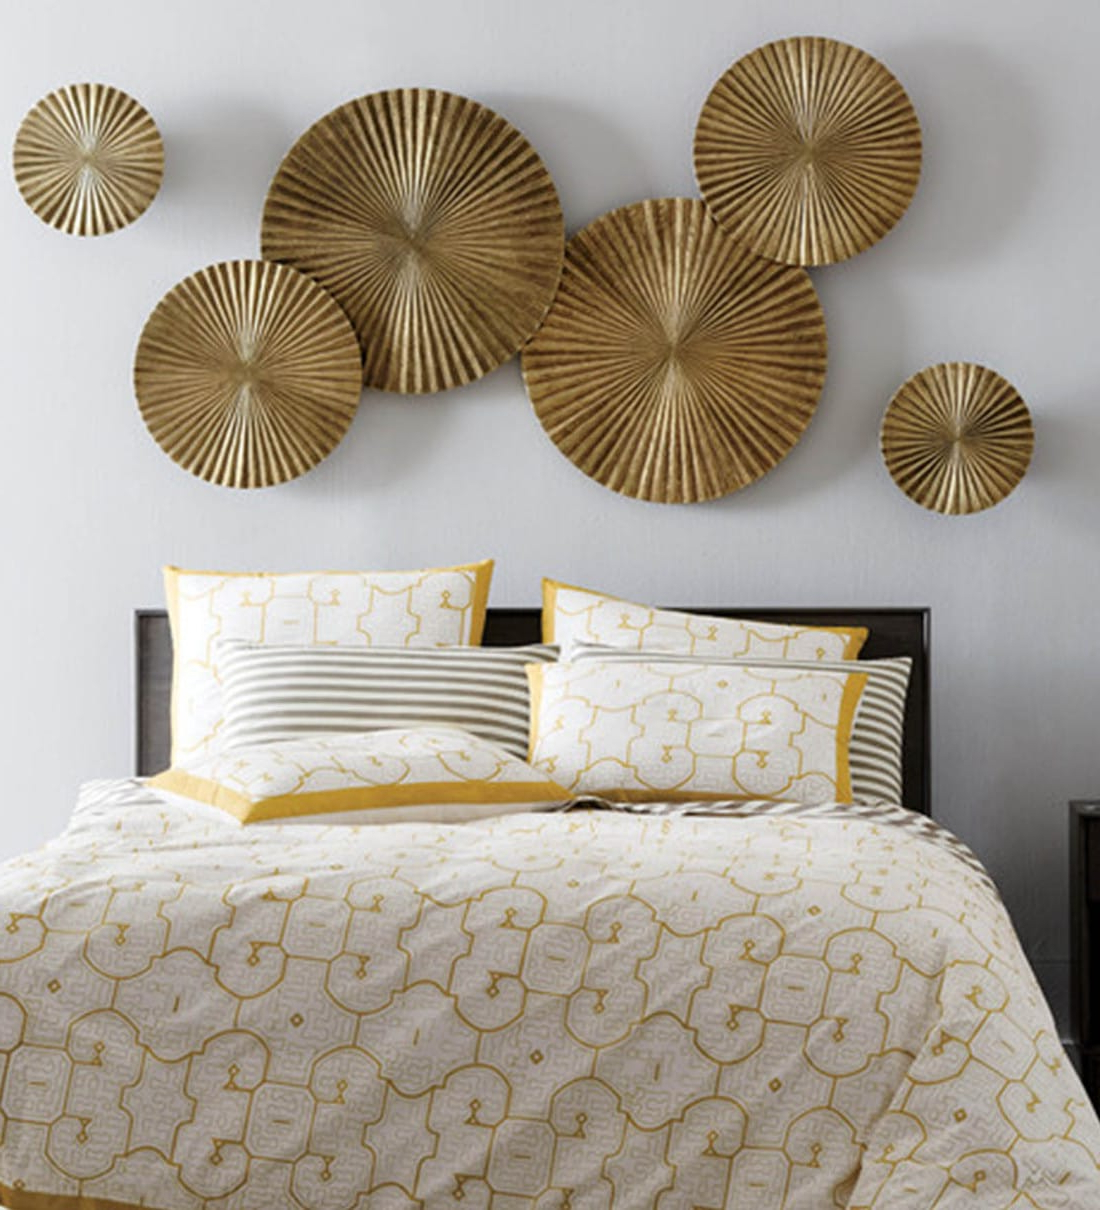 Popular Wrought Iron Decorative In Golden Wall Art Throughout 2 Piece Starburst Wall Décor Set By Wrought Studio (View 11 of 20)